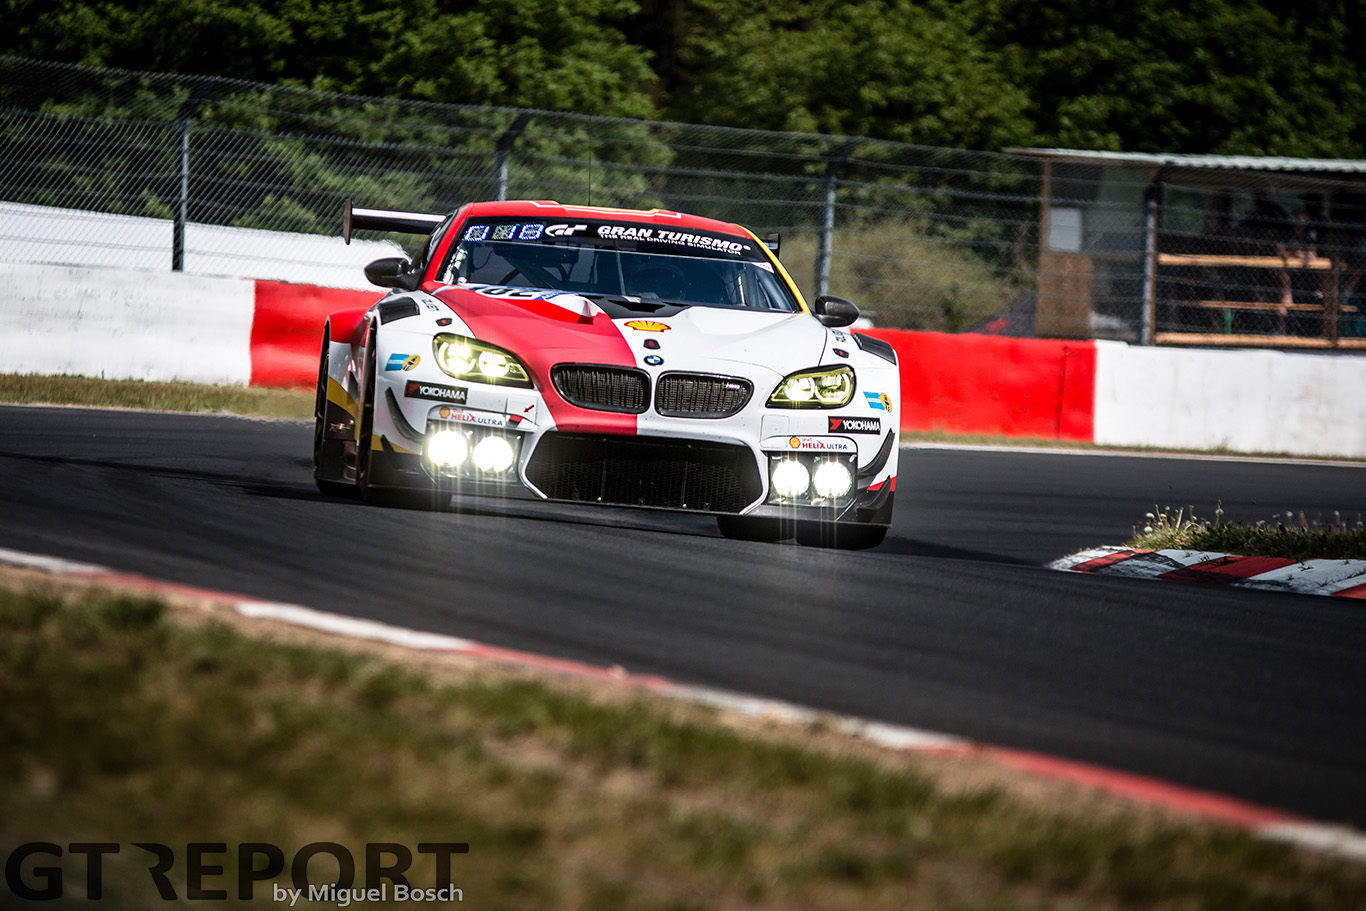 Christian Krognes at the N24: The race